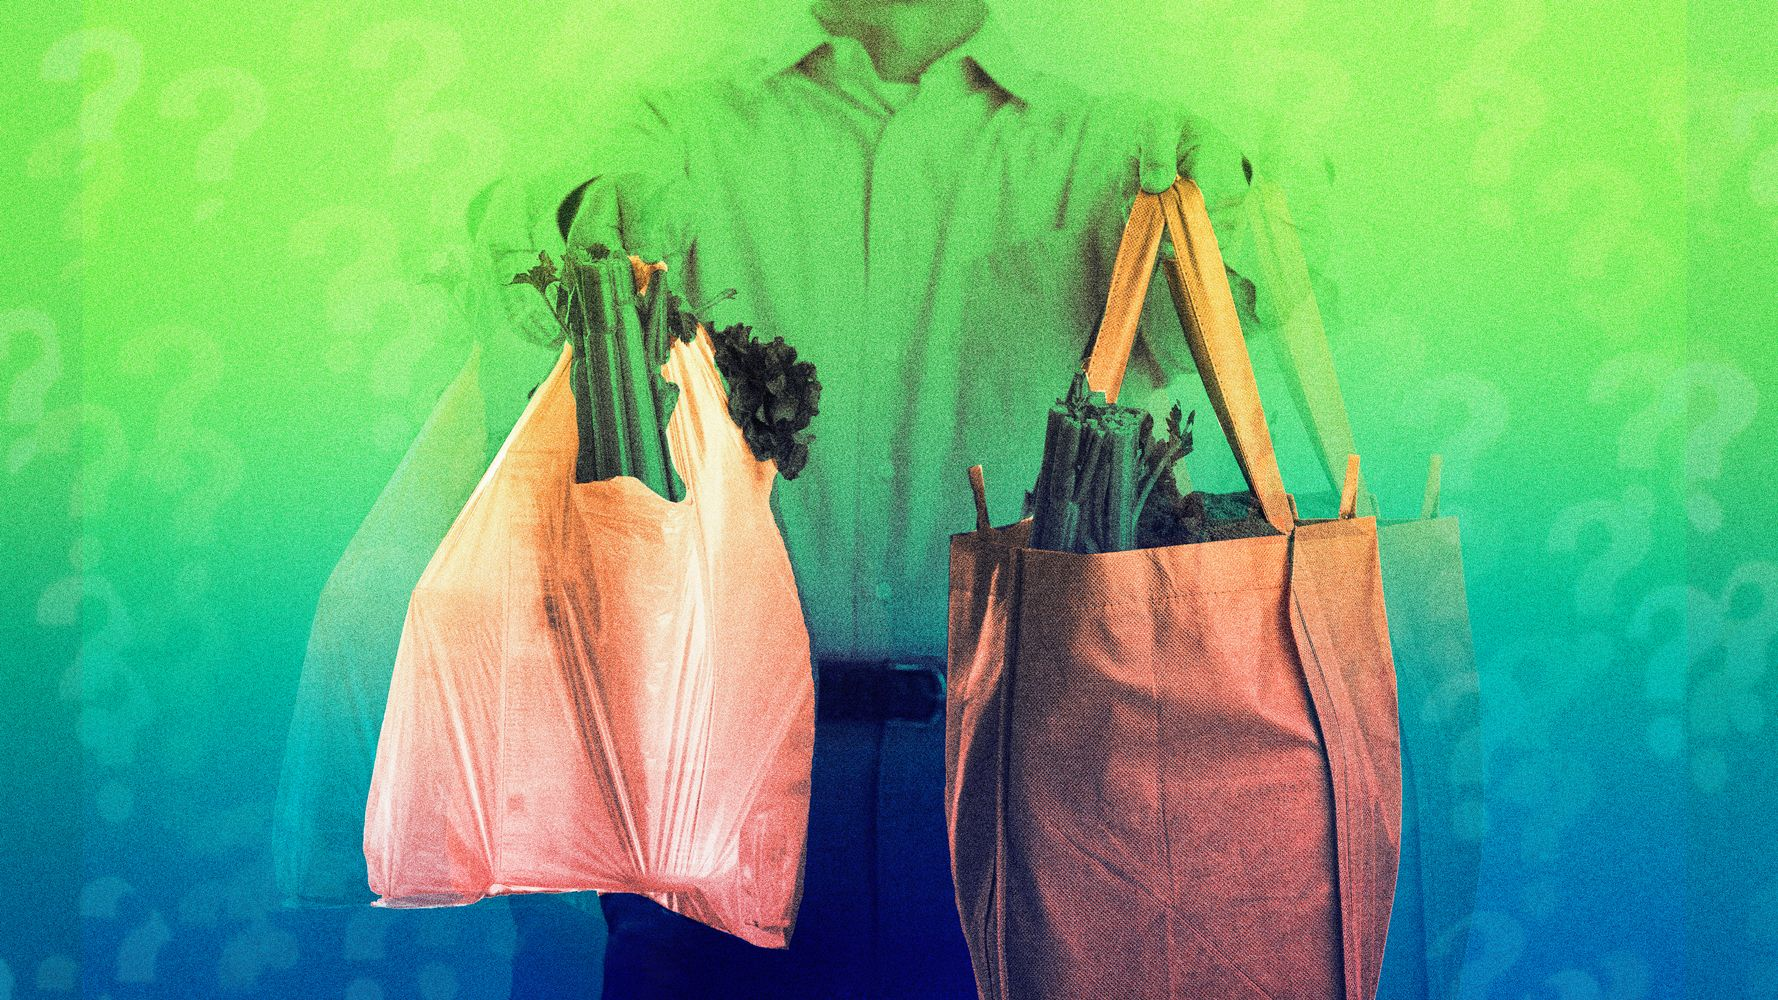 Are Plastic, Paper Or Reusable Bags Better For The